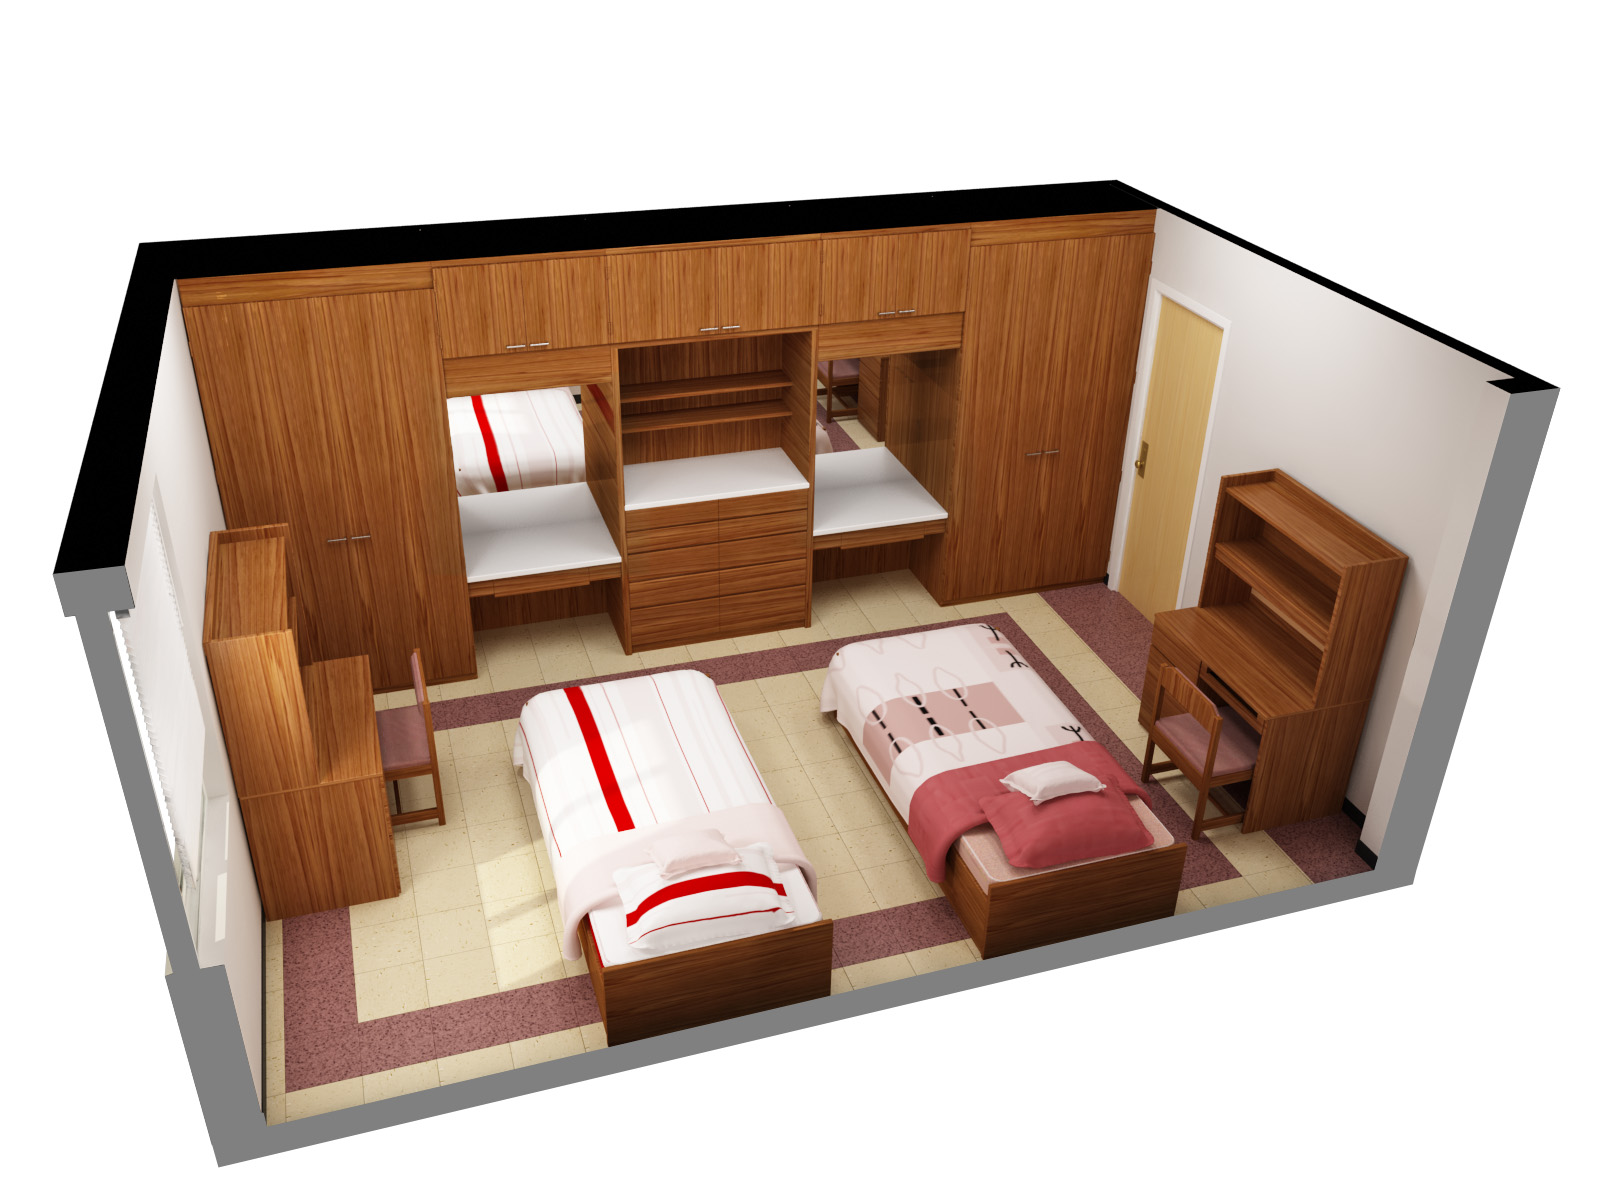 virtual room designer free you should try out custom home design premium cable television access image 5 of 10